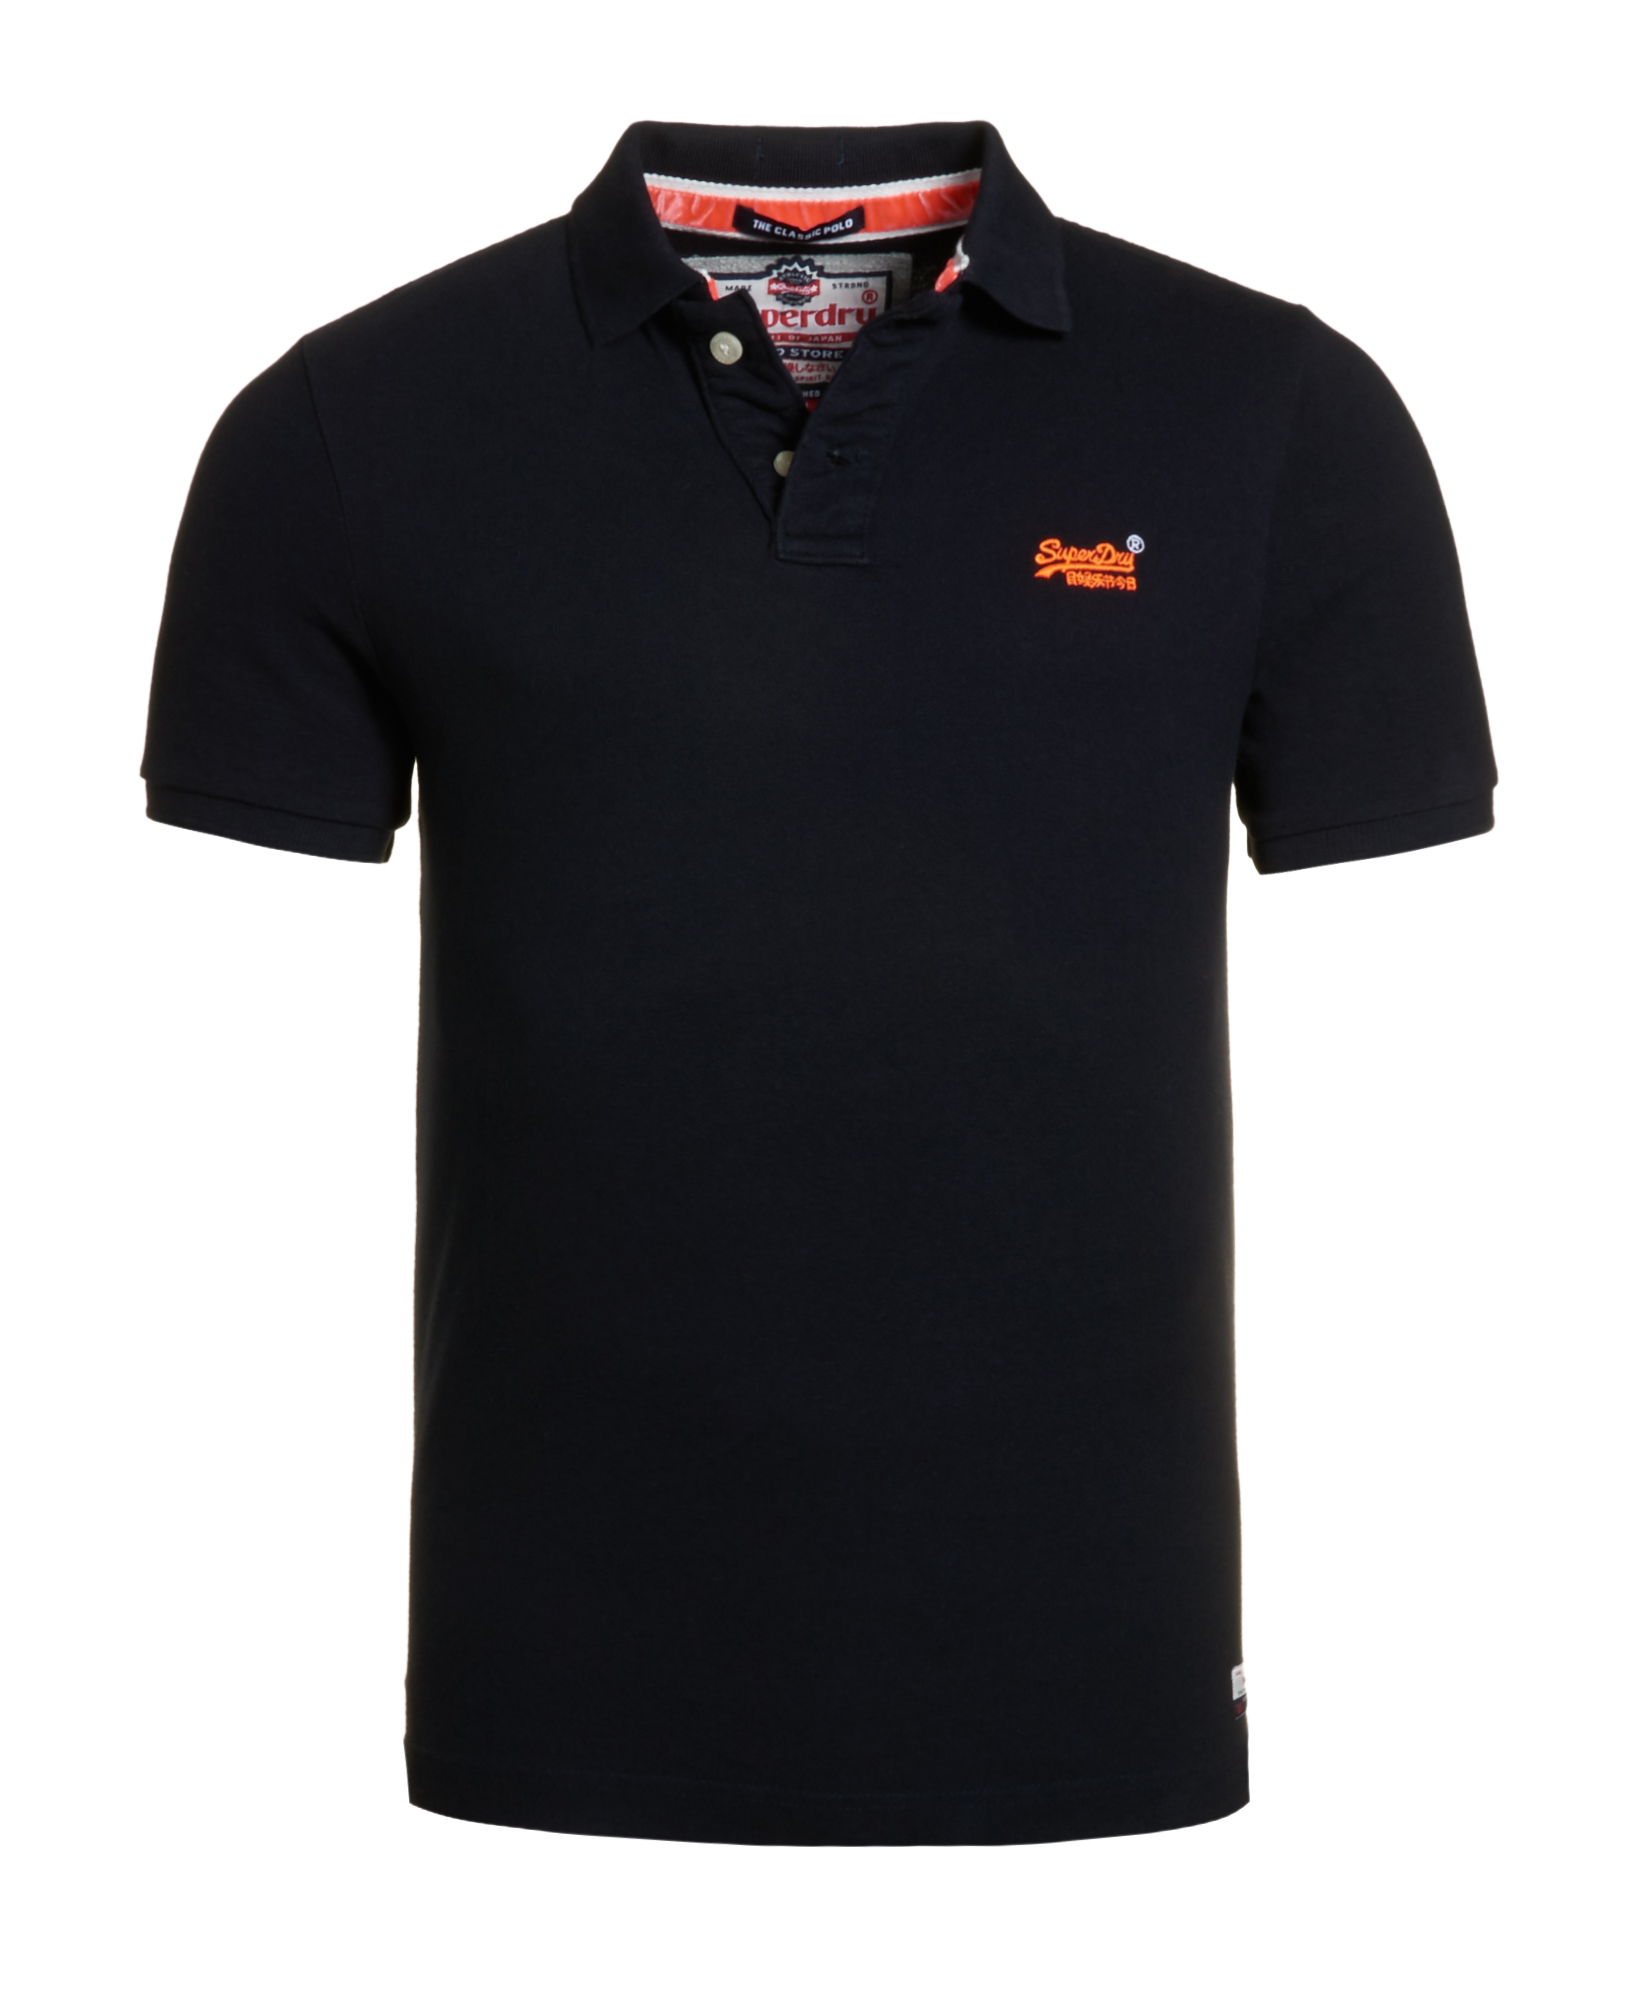 neues herren superdry classic pique polo shirt total eclipse ebay. Black Bedroom Furniture Sets. Home Design Ideas